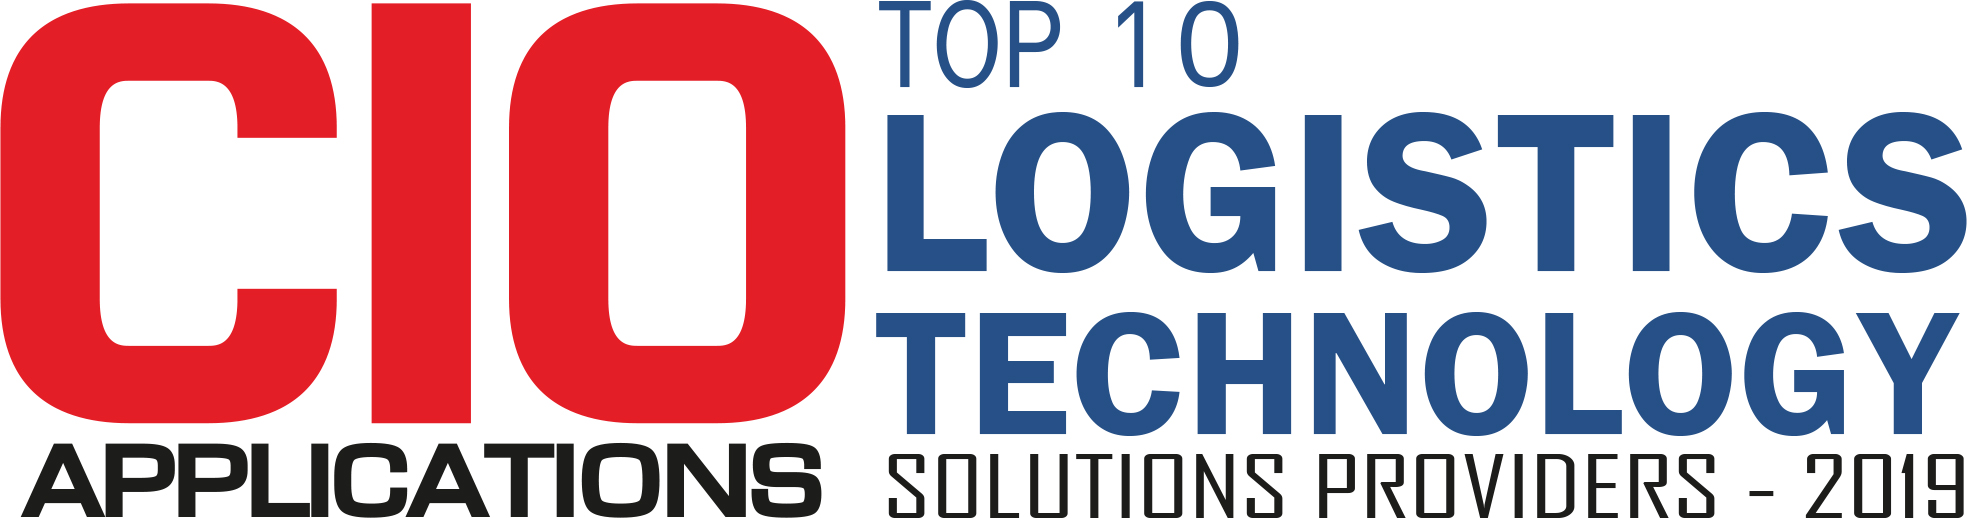 Top 10 Logistics Technology Solution Companies - 2019